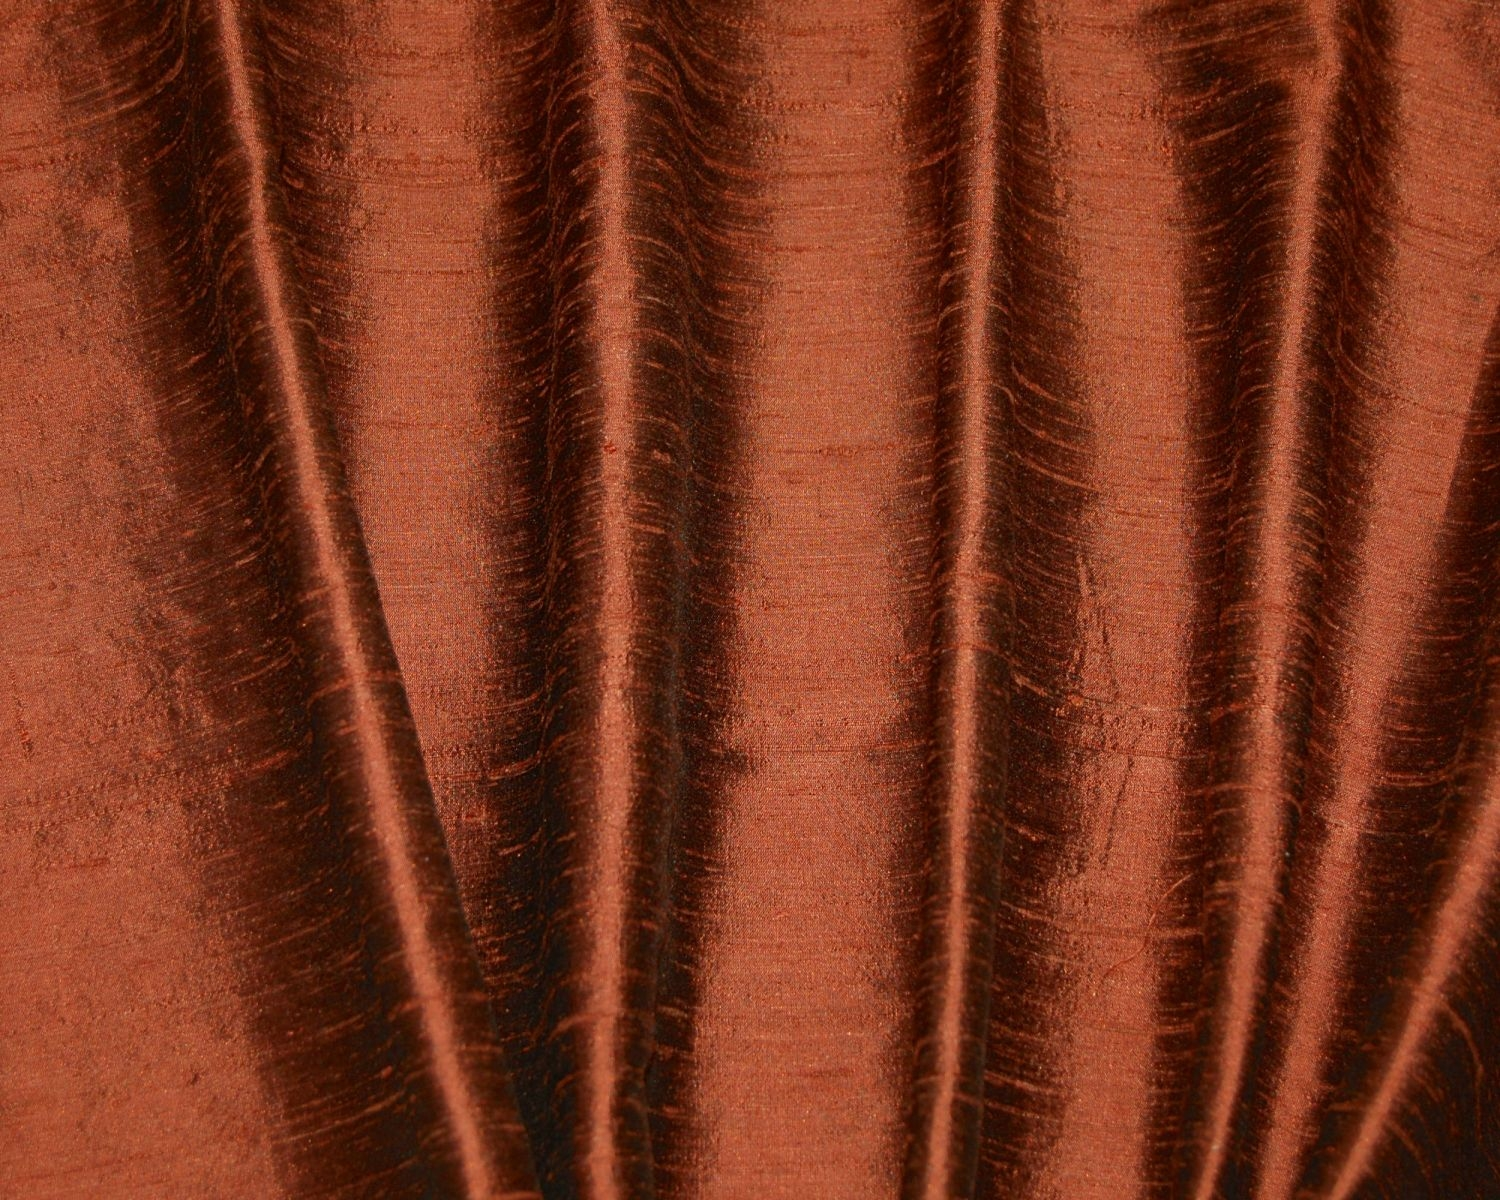 Orange Dupioni Silk Drapes Curtains Shades Custom Made In The Usa Pertaining To Orange Silk Curtains (Image 10 of 15)